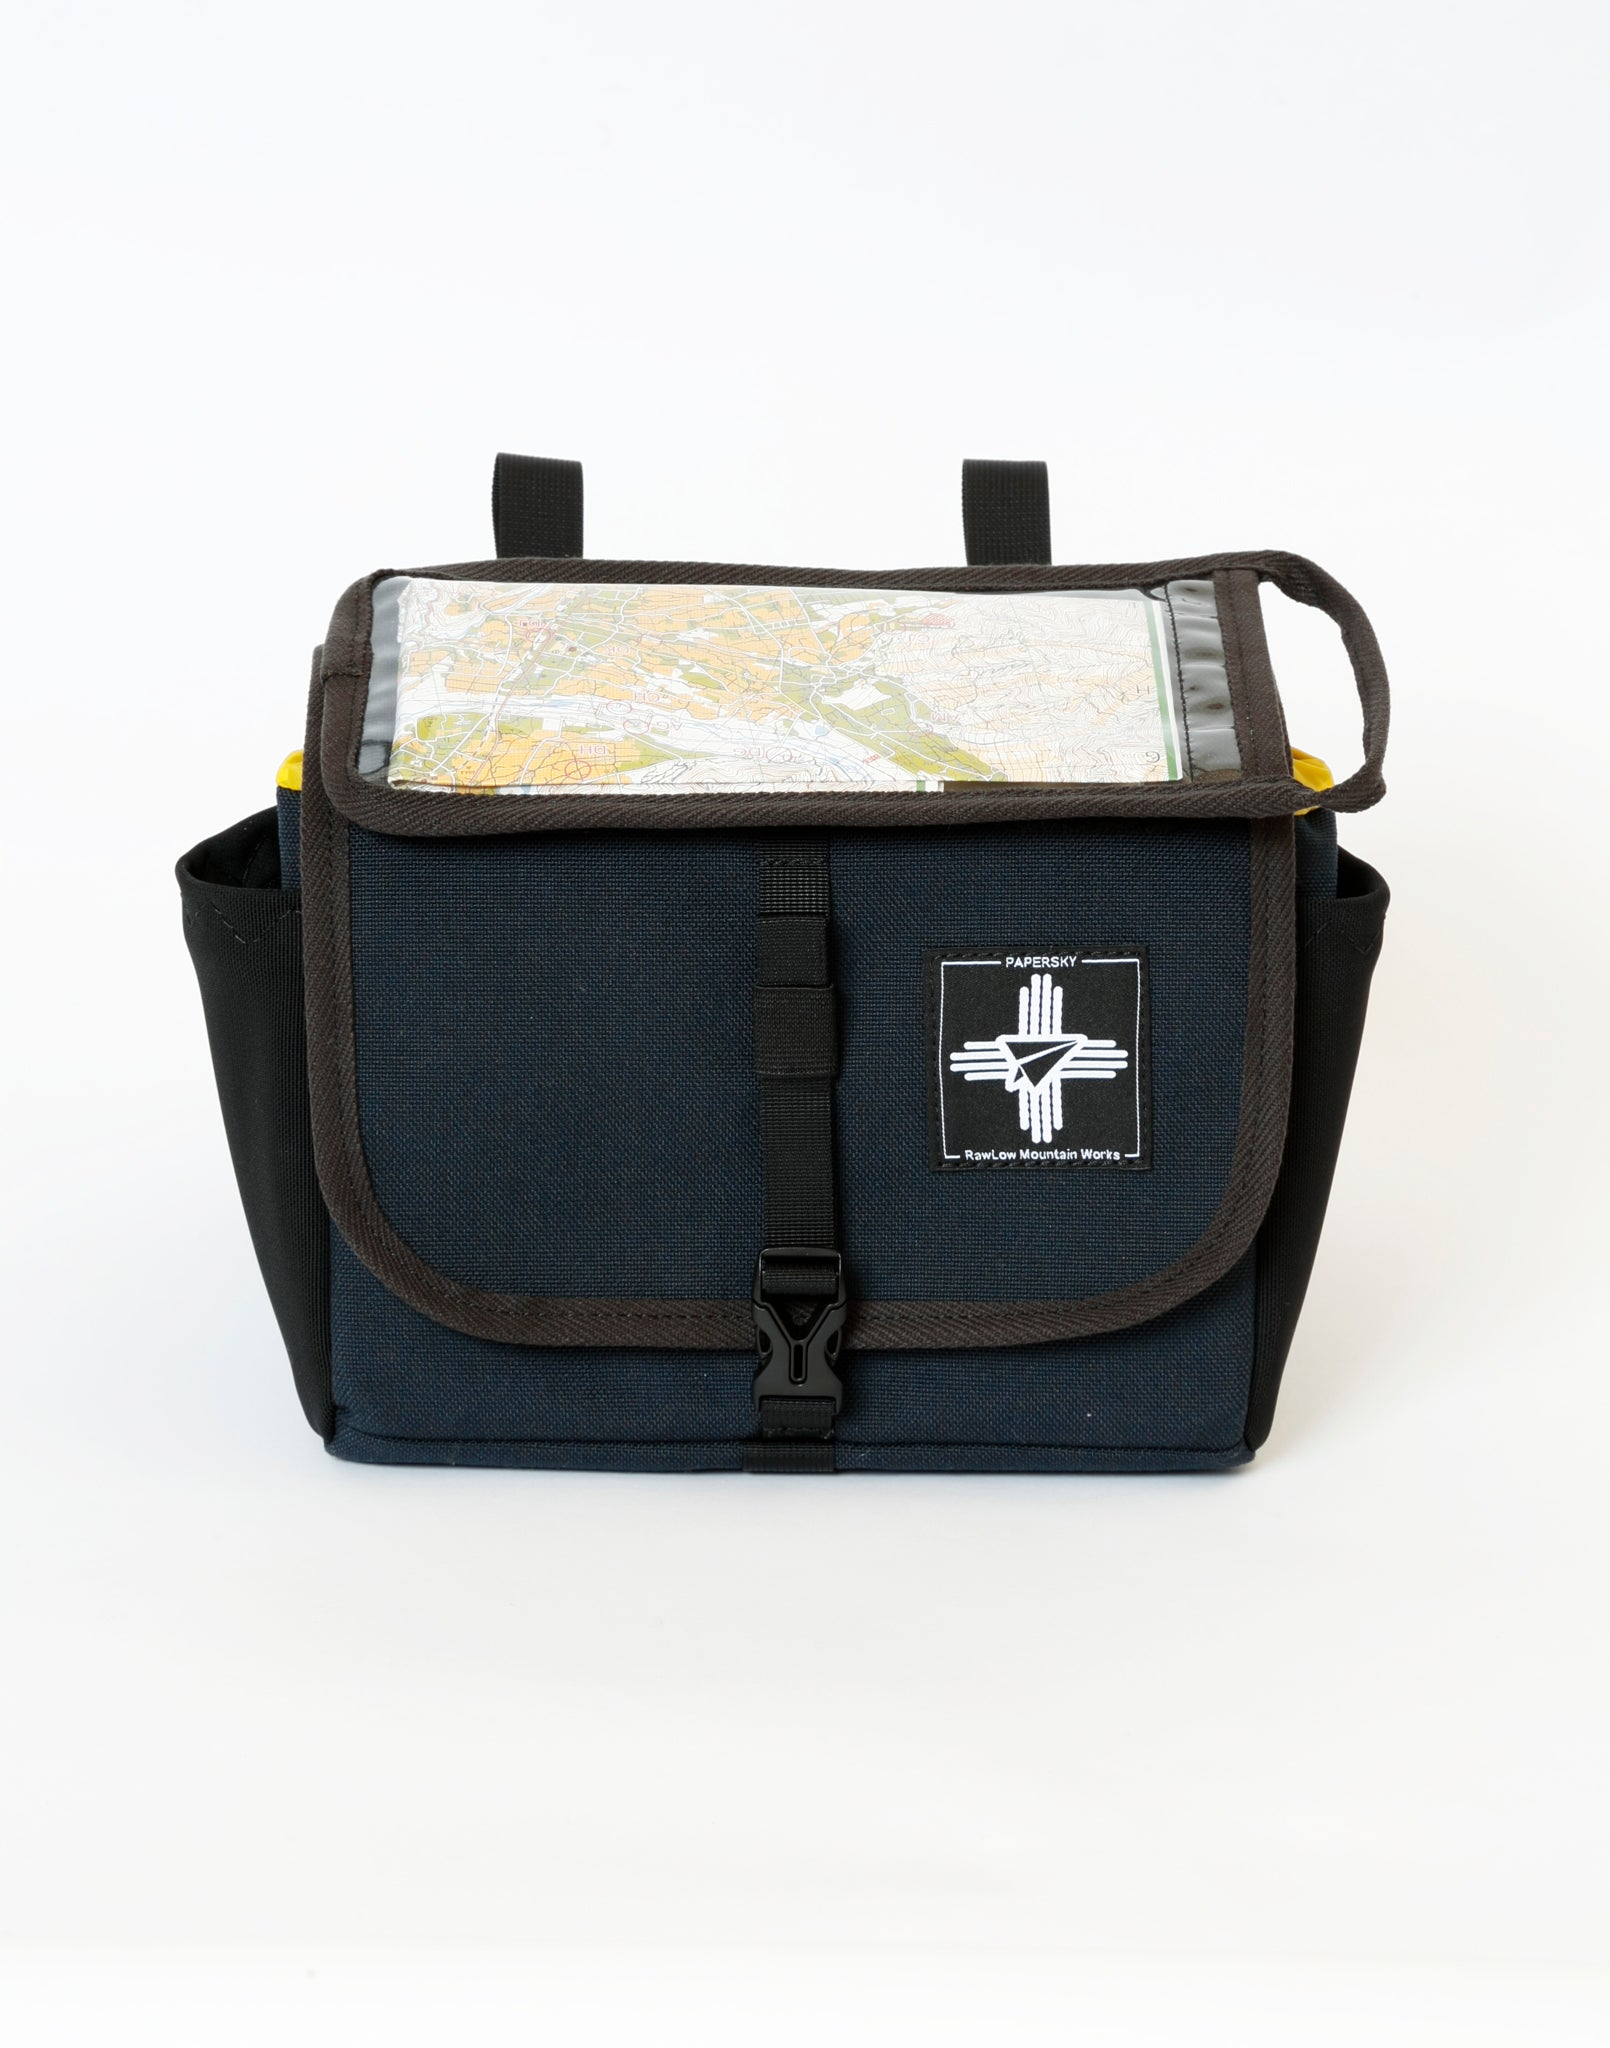 papersky and rawlow mountain products front bike bag